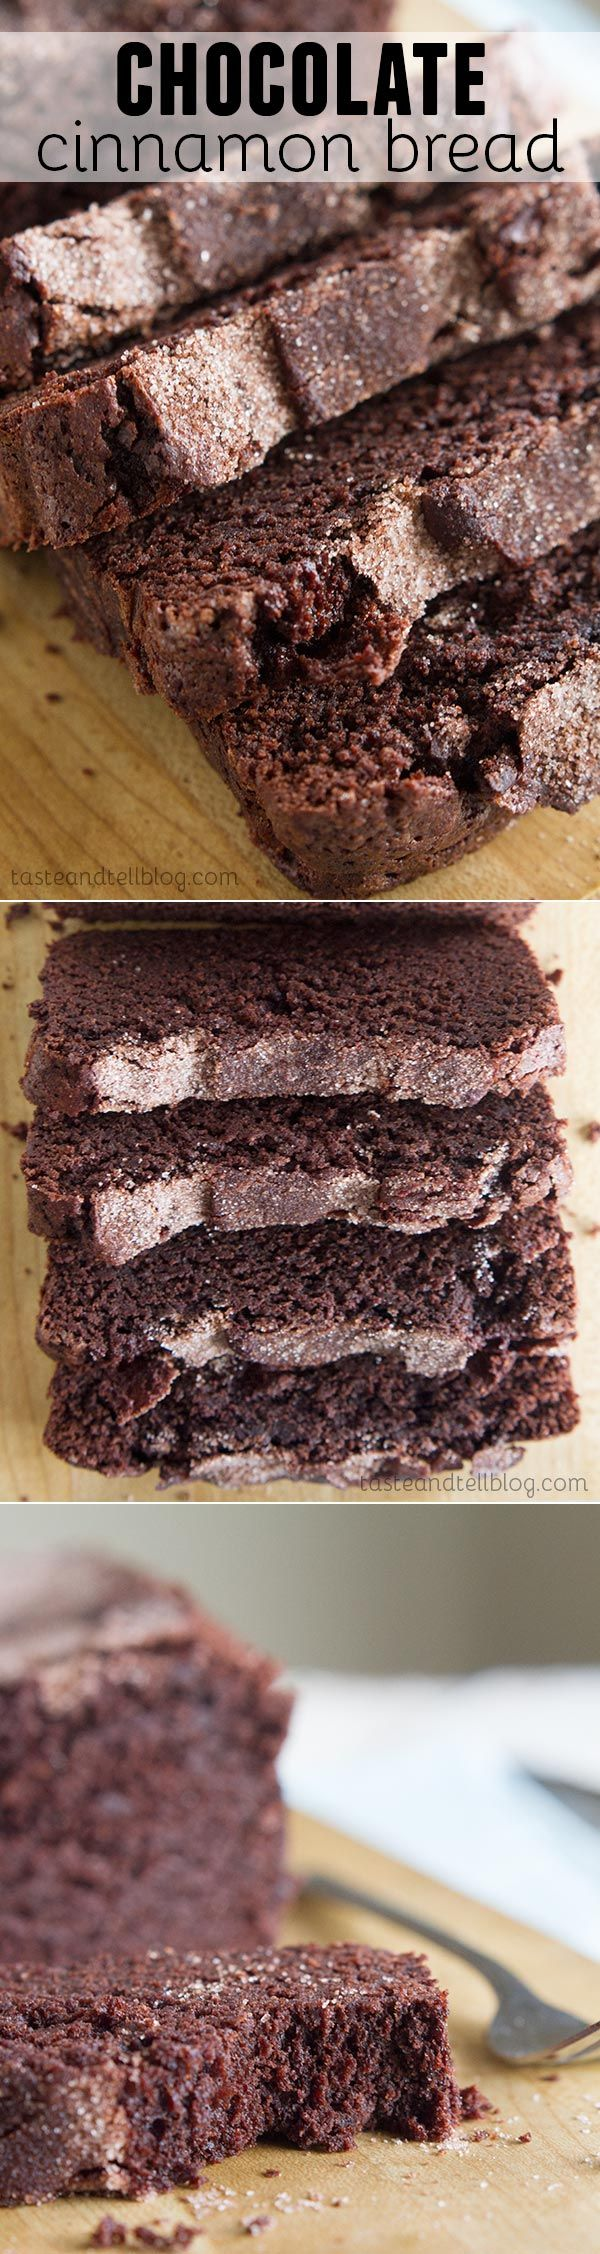 Chocolate Cinnamon Bread - A rich chocolate bread with a hint of cinnamon that is topped with a cinnamon sugar crunchy topping.